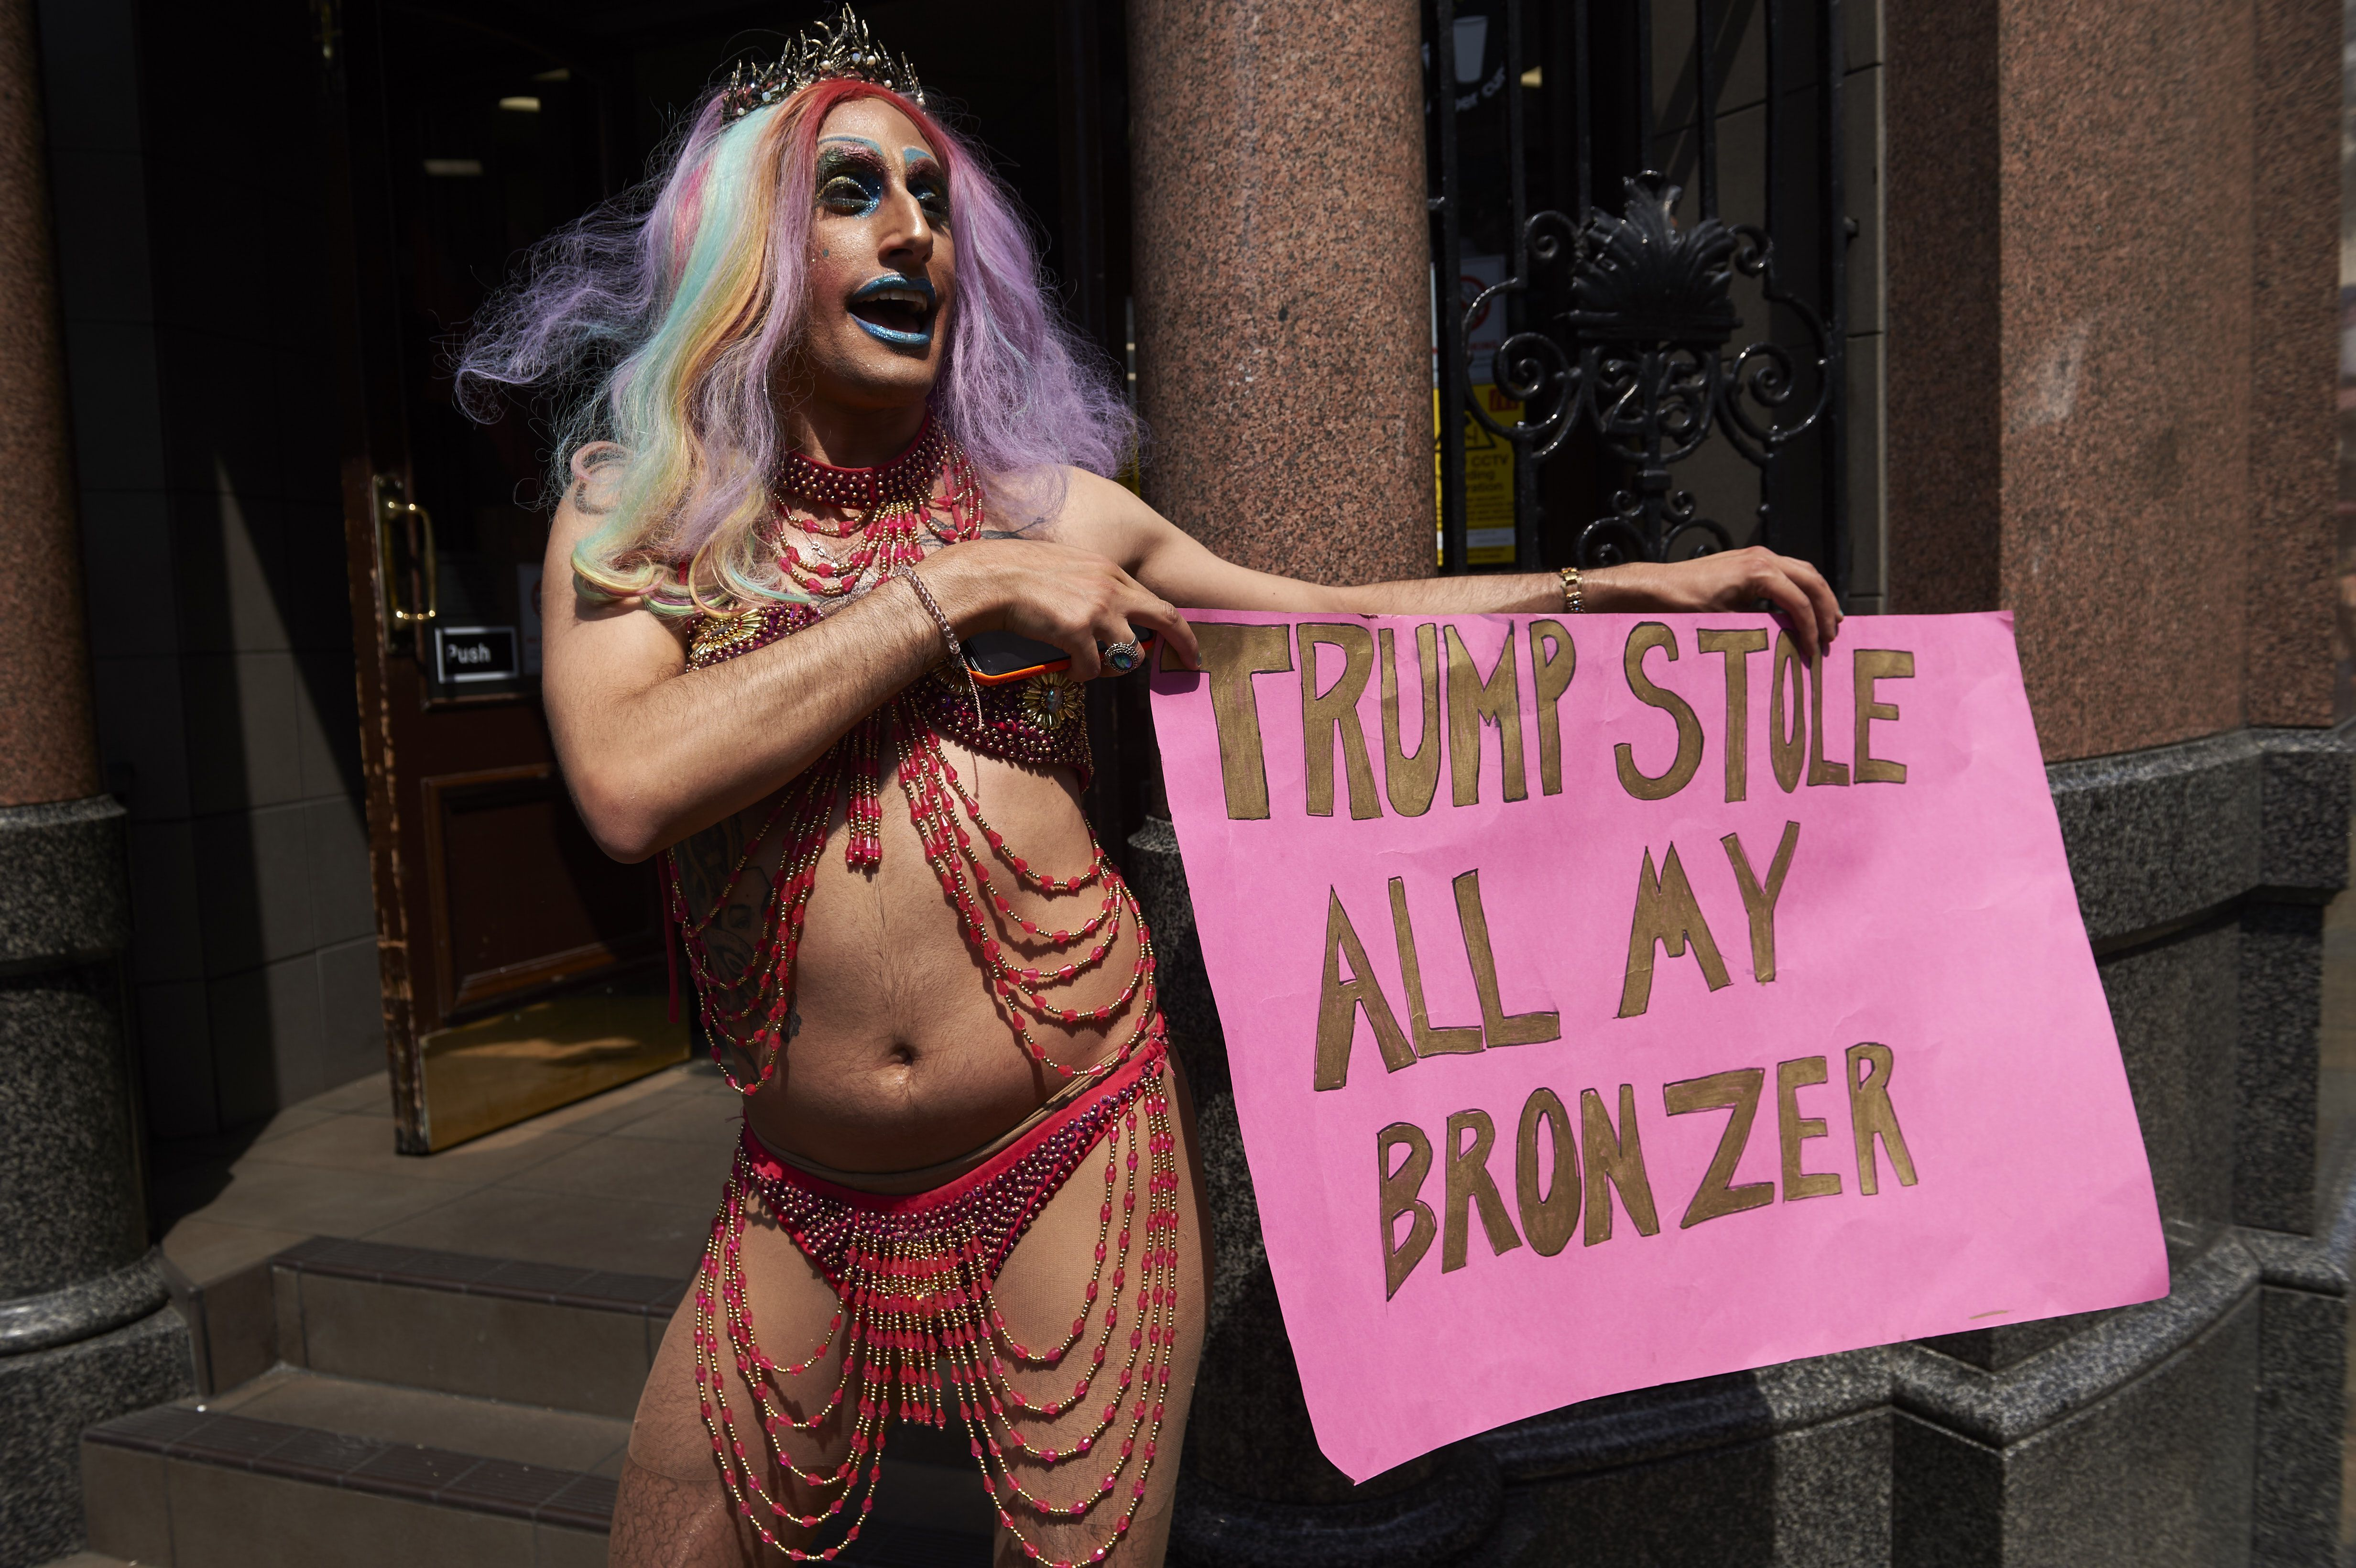 A drag queen joins protesters against the UK visit of US President Donald Trump as they gather to take part in a march and rally in London on July 13, 2018.